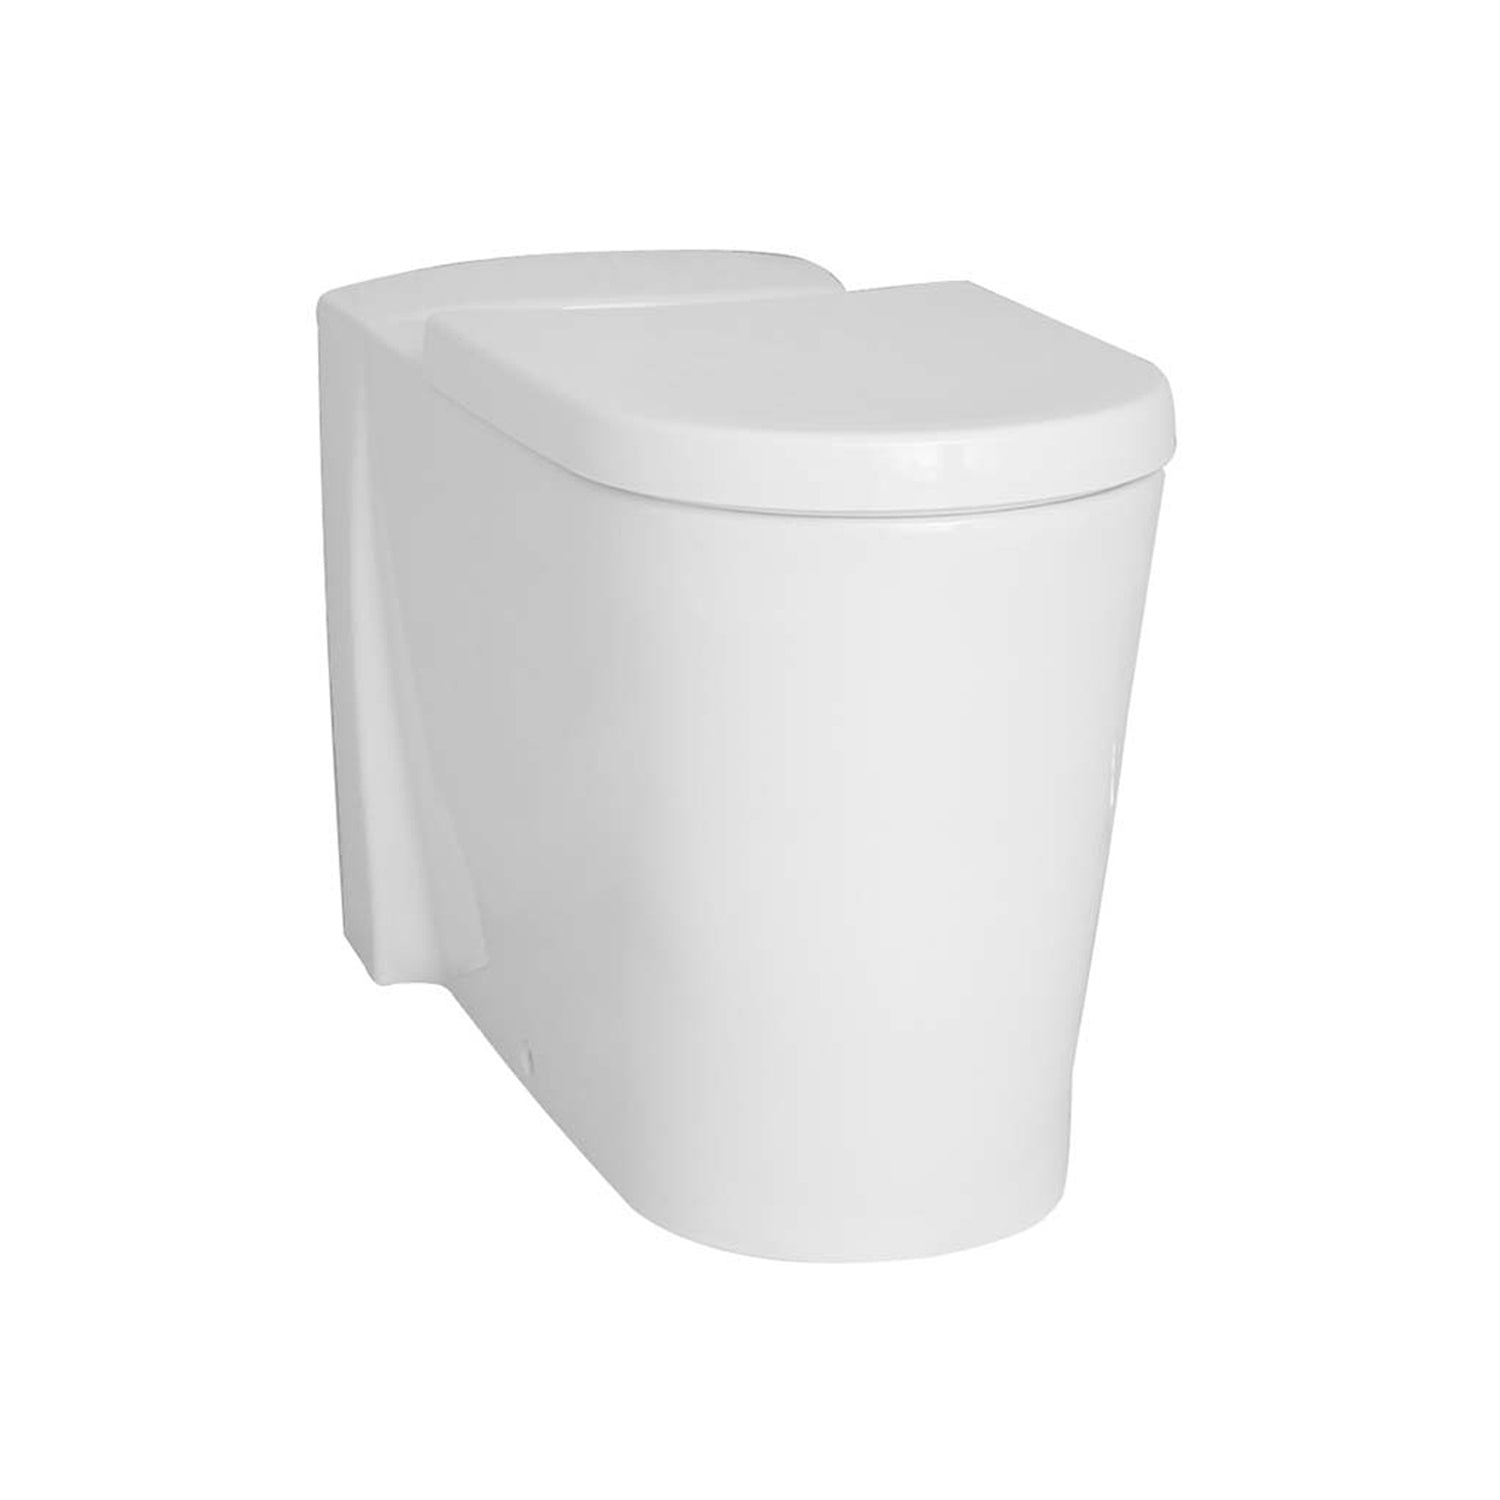 750mm Matrix Long Projection Back to Wall Toilet with a seat and cover on a white background